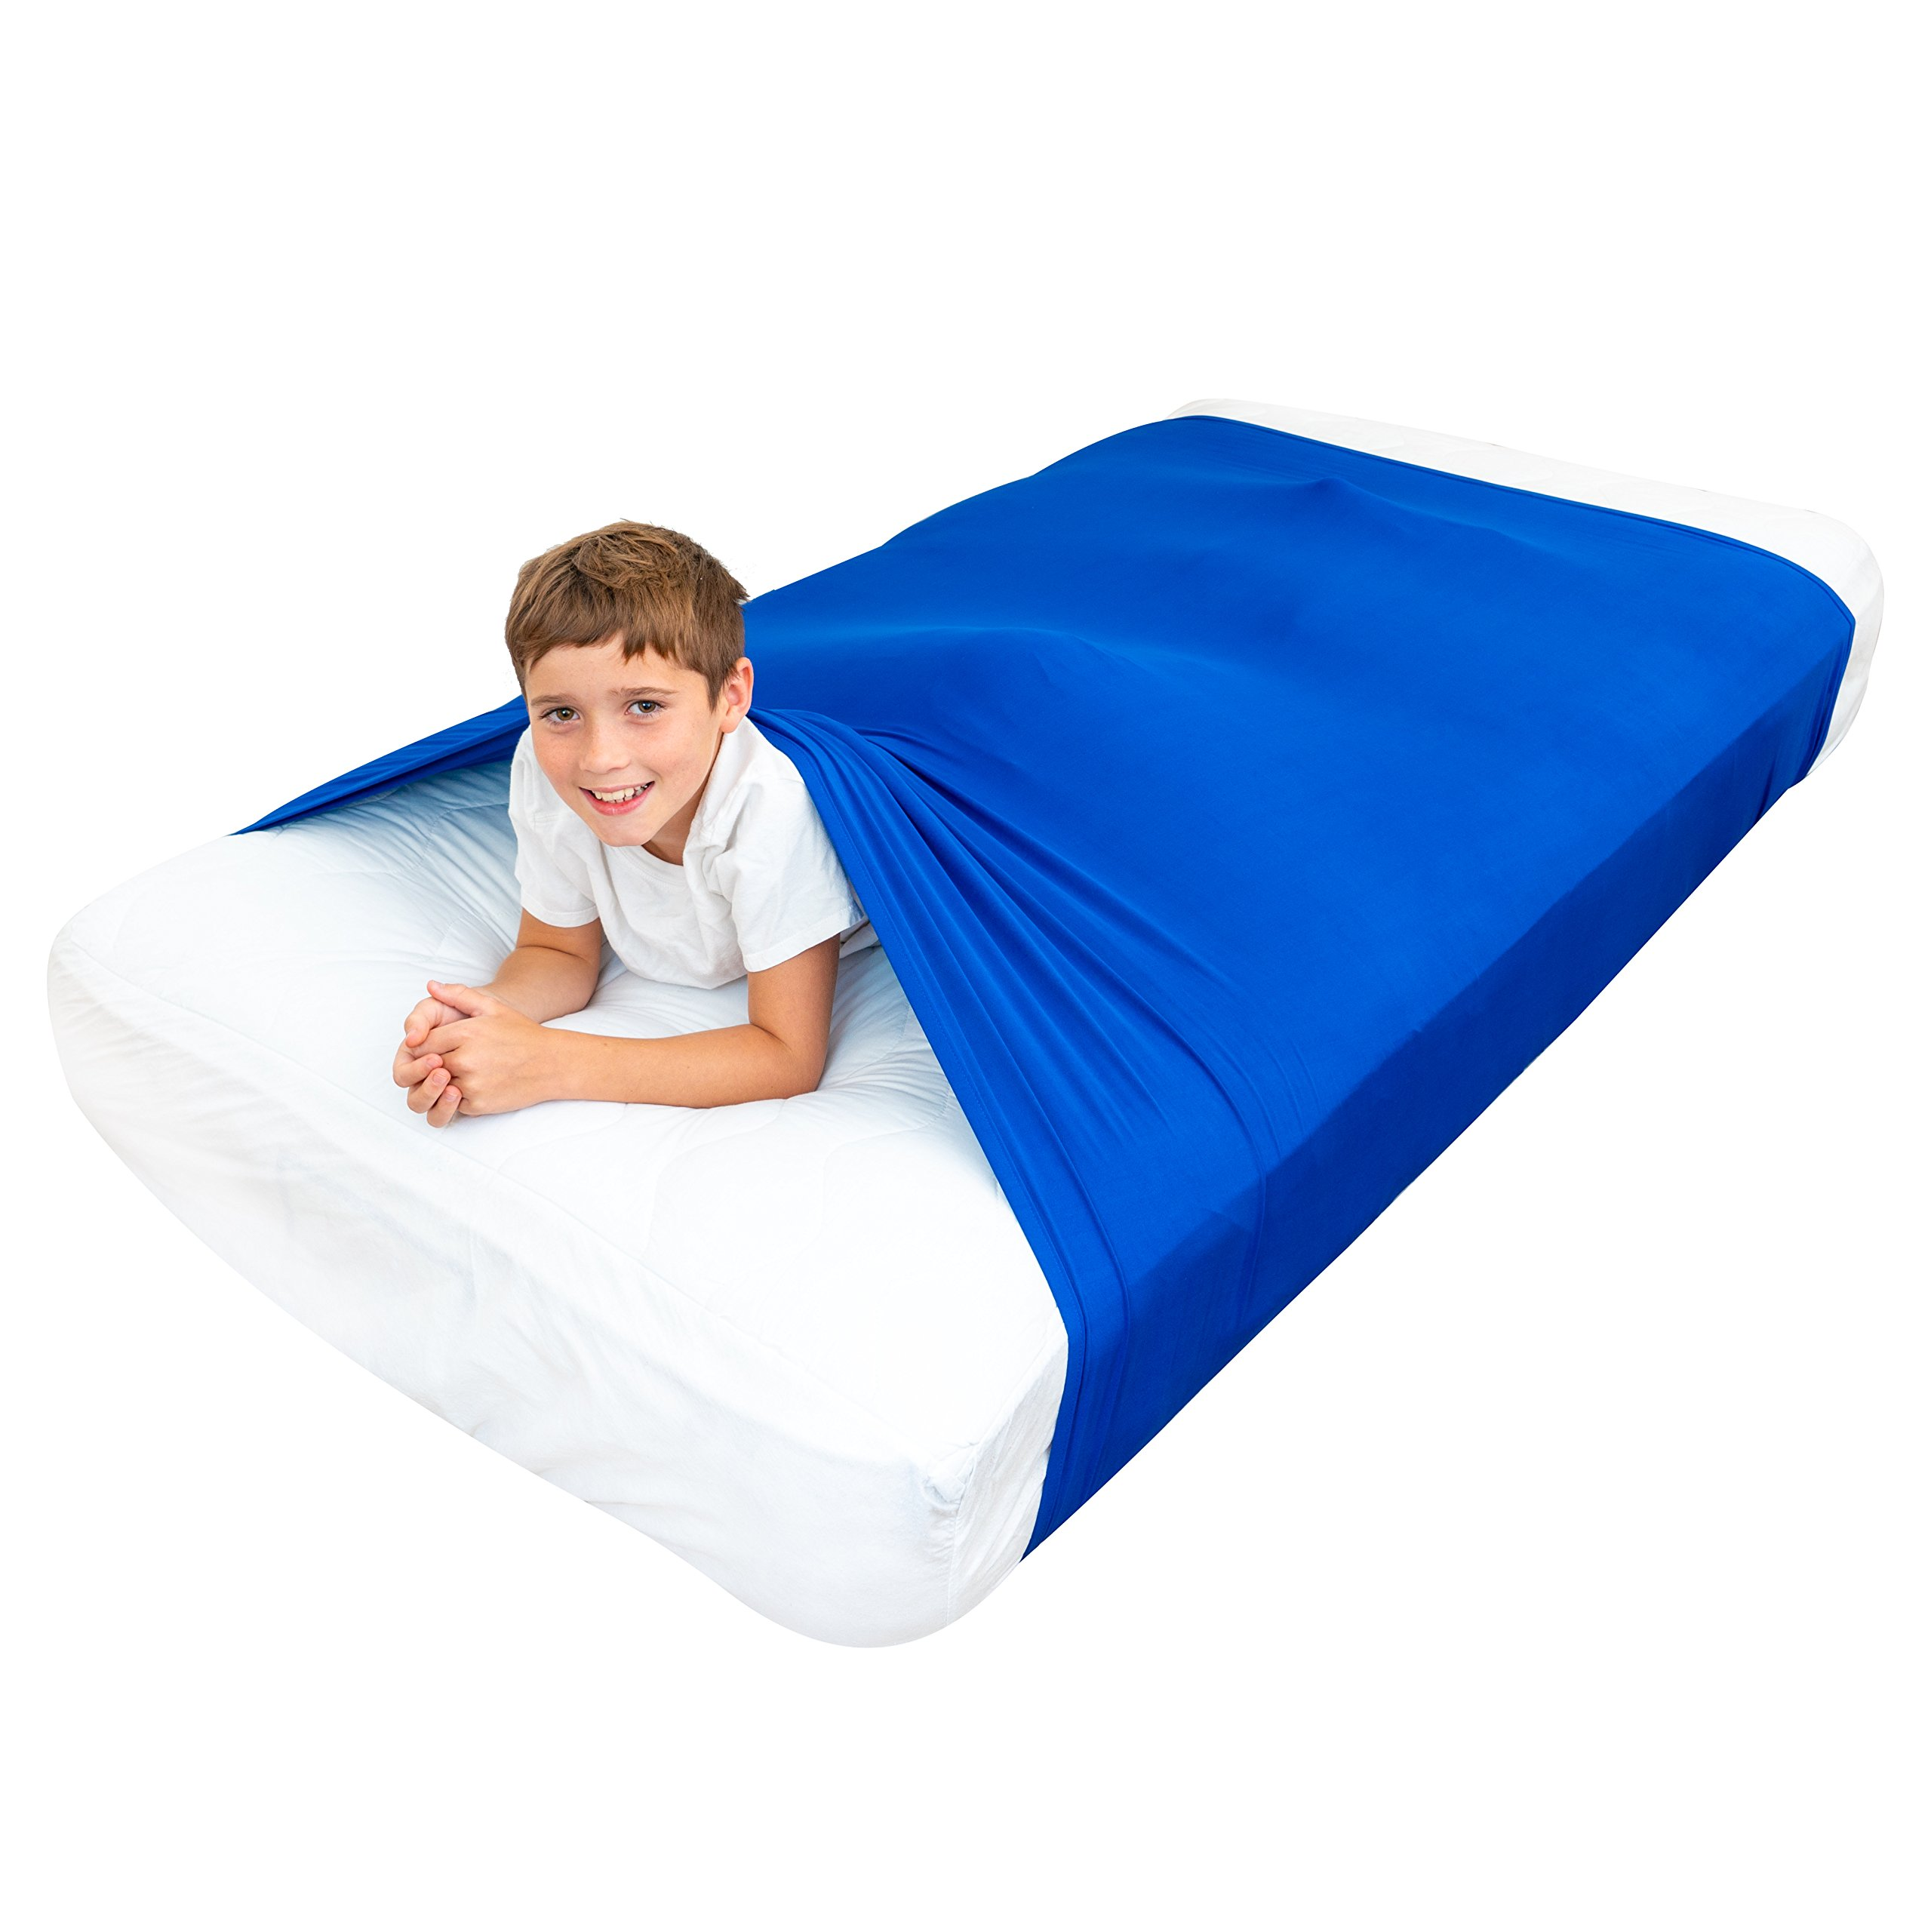 Special Supplies Sensory Bed Sheet for Kids Compression Alternative to Weighted Blankets | Breathable, Stretchy | Cool, Comfortable Sleeping Bedding (Blue, Twin)